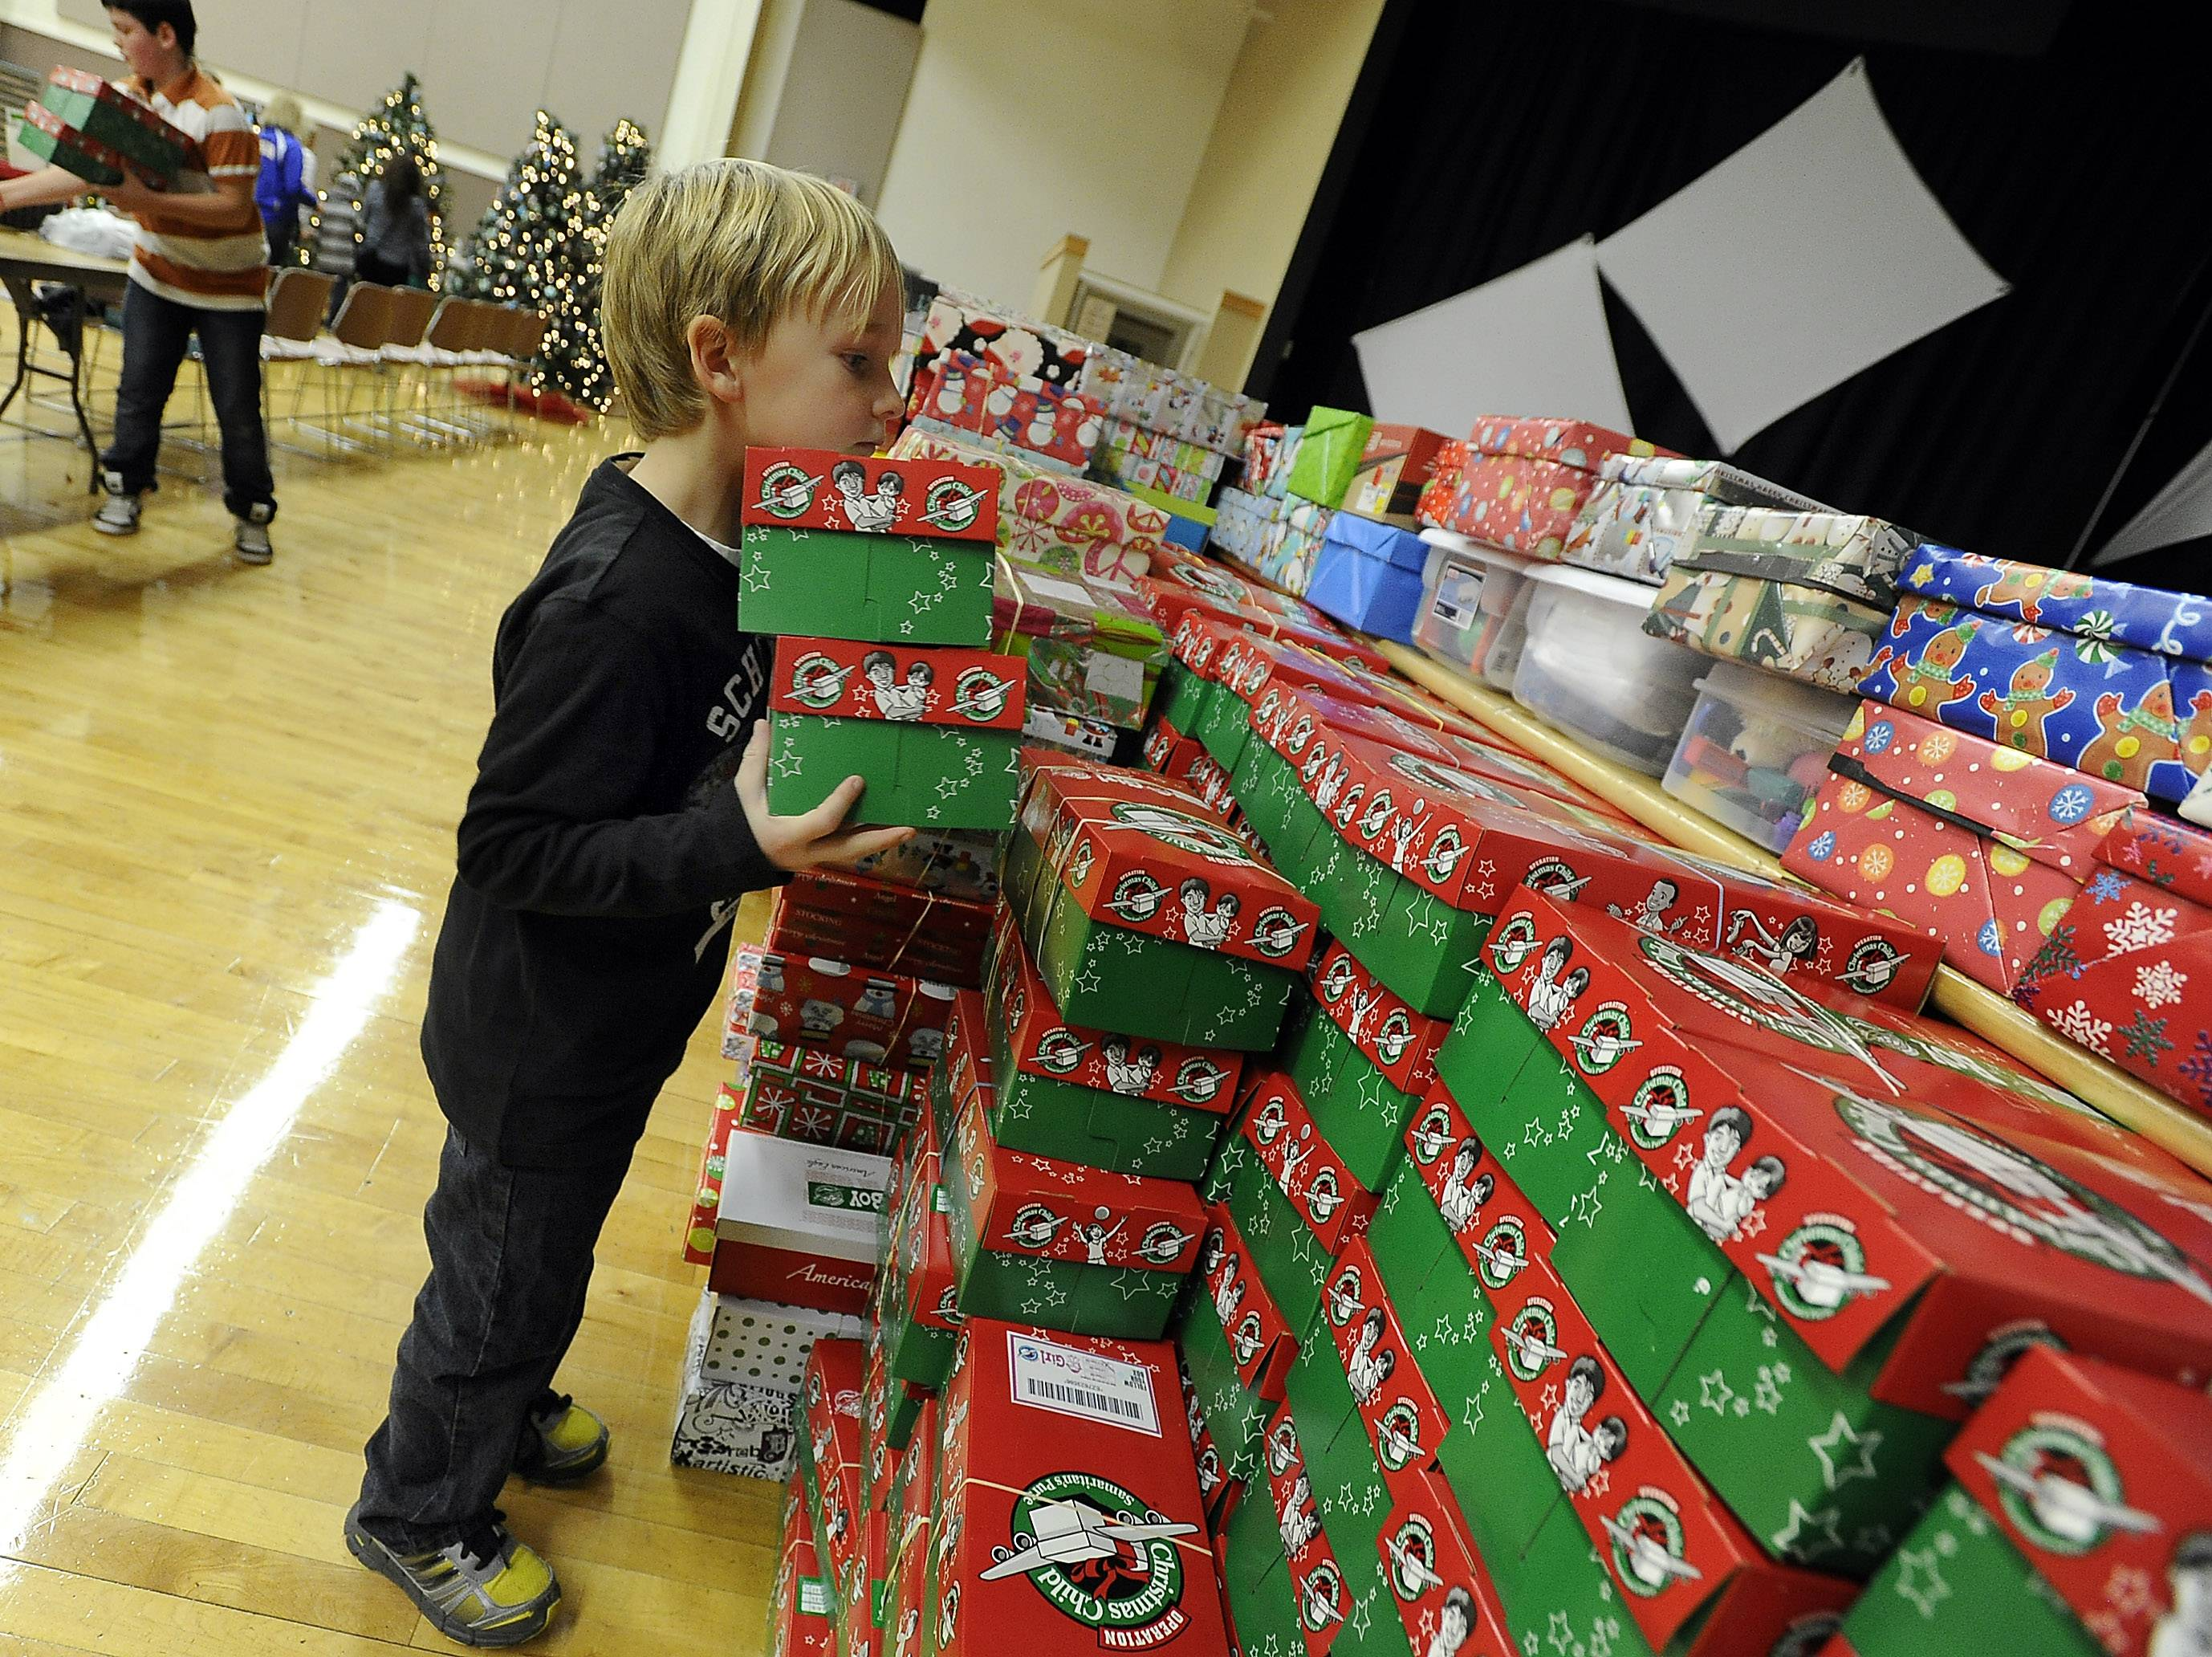 Grayson Peterson, 6, of Wisconsin stacks fully loaded boxes at an Operation Christmas Child collection event at Immanuel Church in Gurnee.